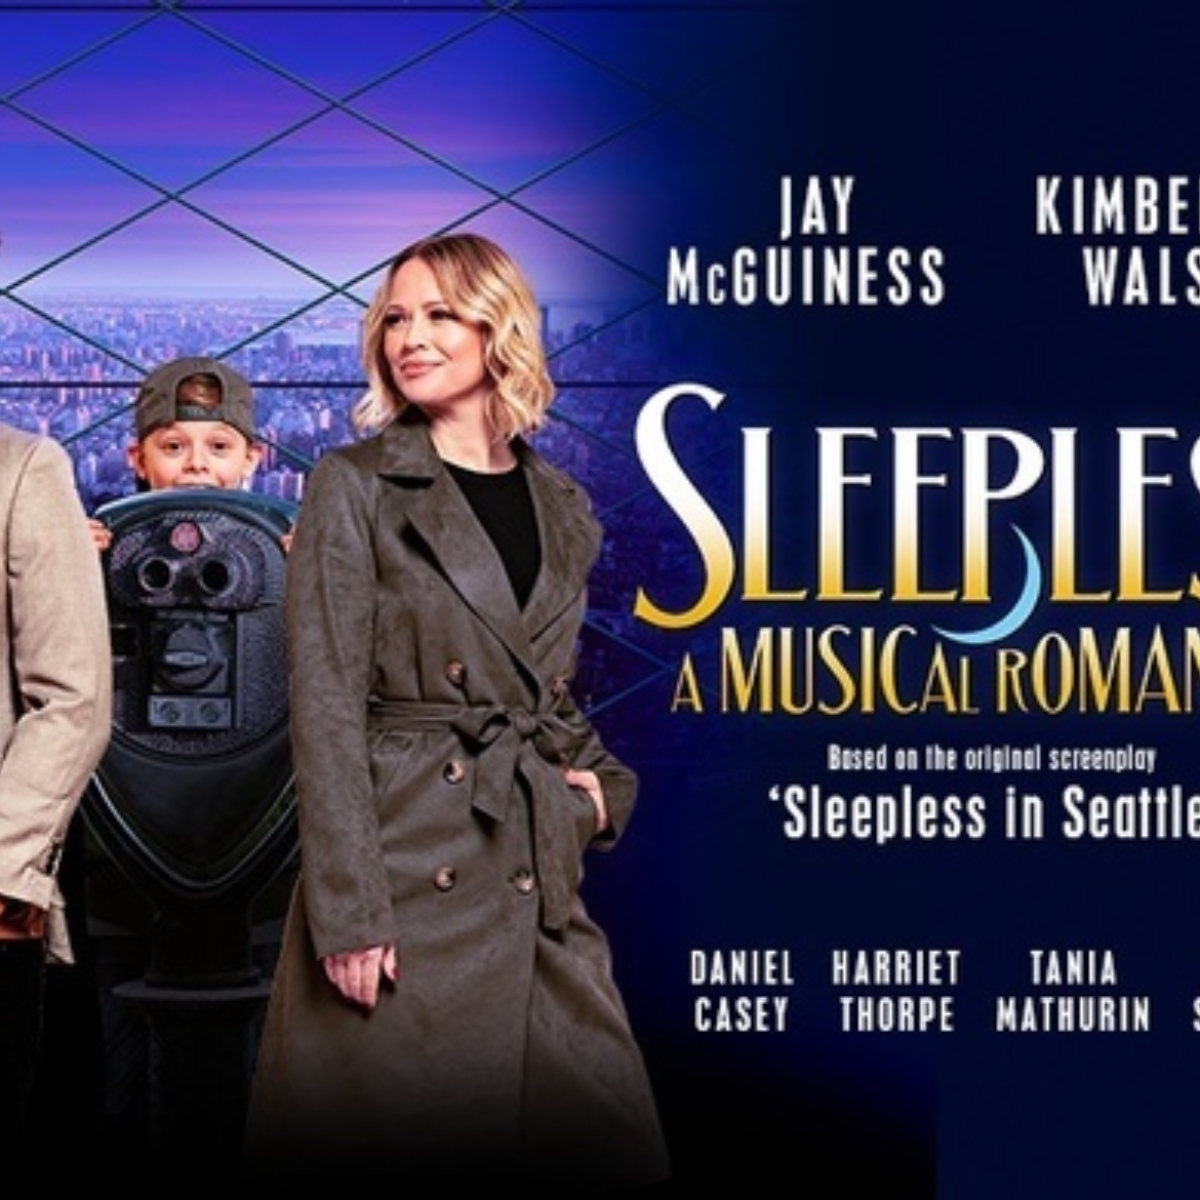 Sleepless: A Musical Romance Images